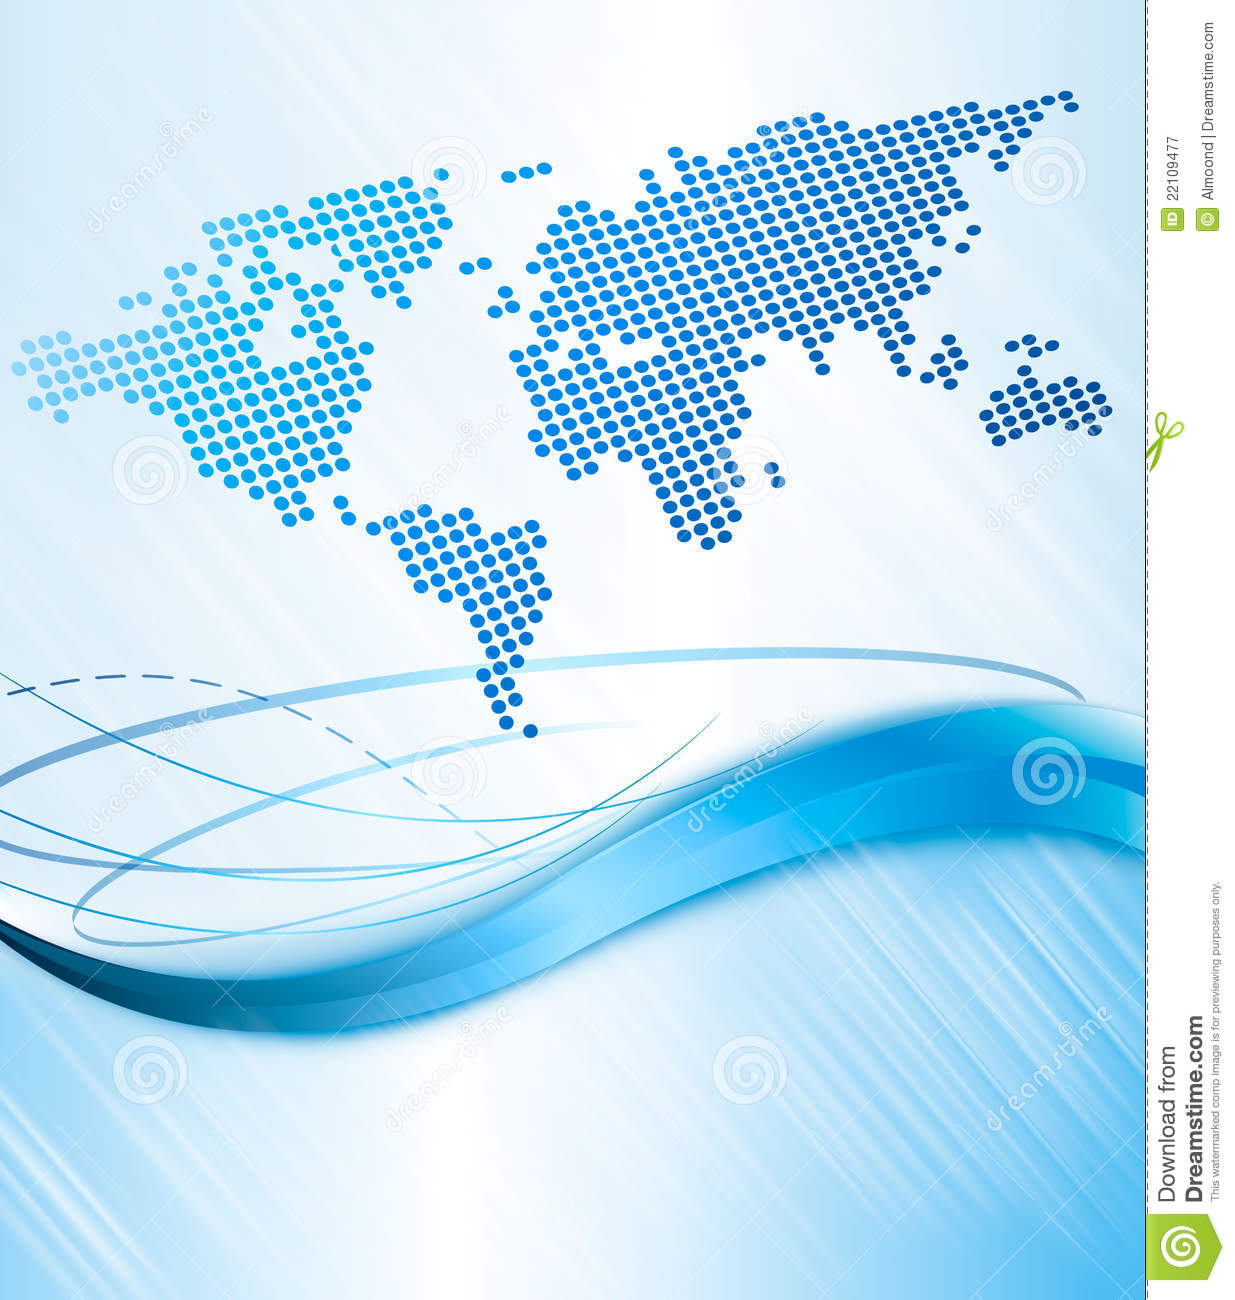 Desktop Wallpaper World Map: Business Abstract Background With World Map. Vect Royalty